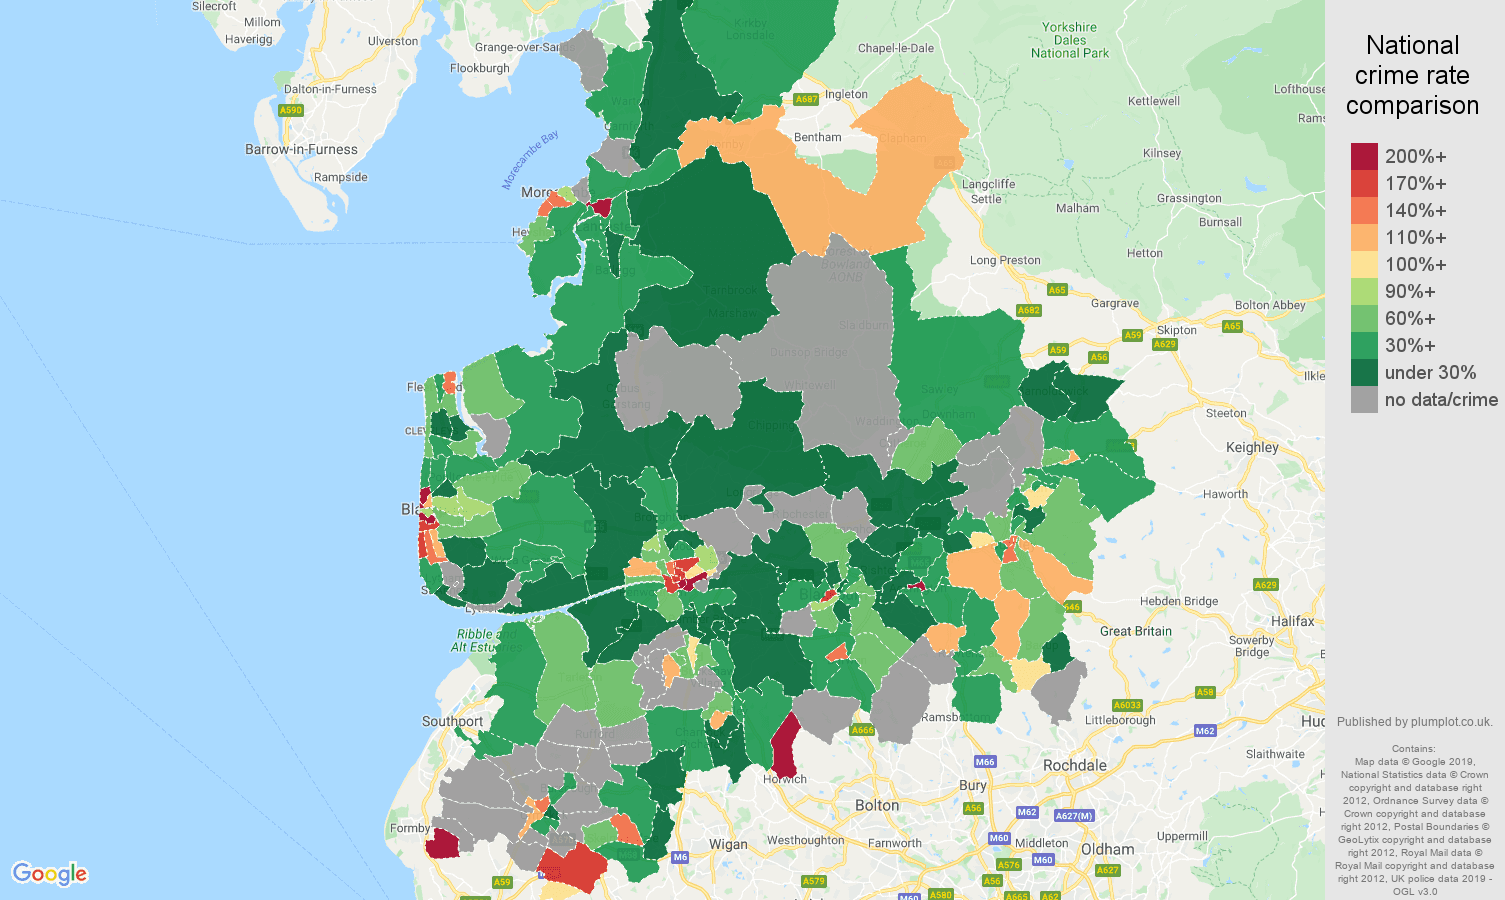 Lancashire possession of weapons crime rate comparison map